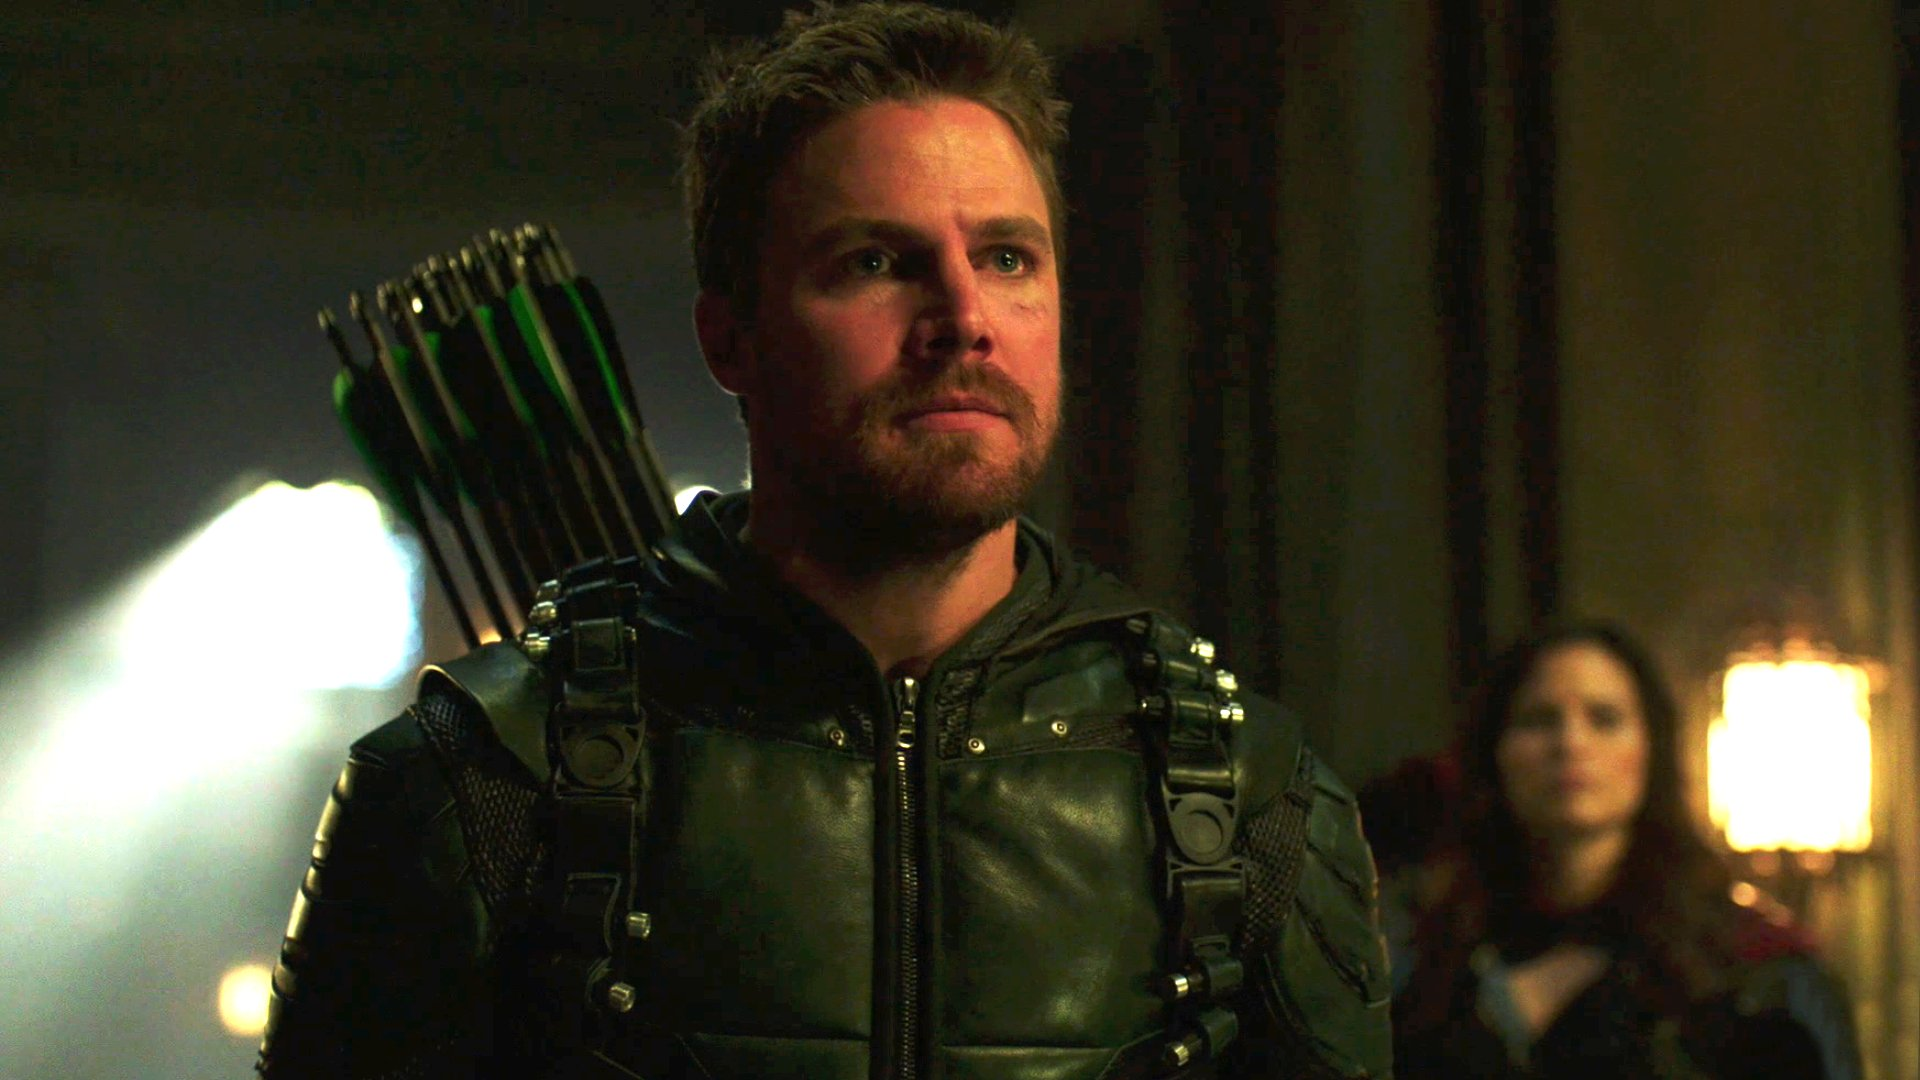 It's a race against time to save Oliver's family on the season finale of #Arrow, TONIGHT at 8/7c. https://t.co/ICHEgNBCv9